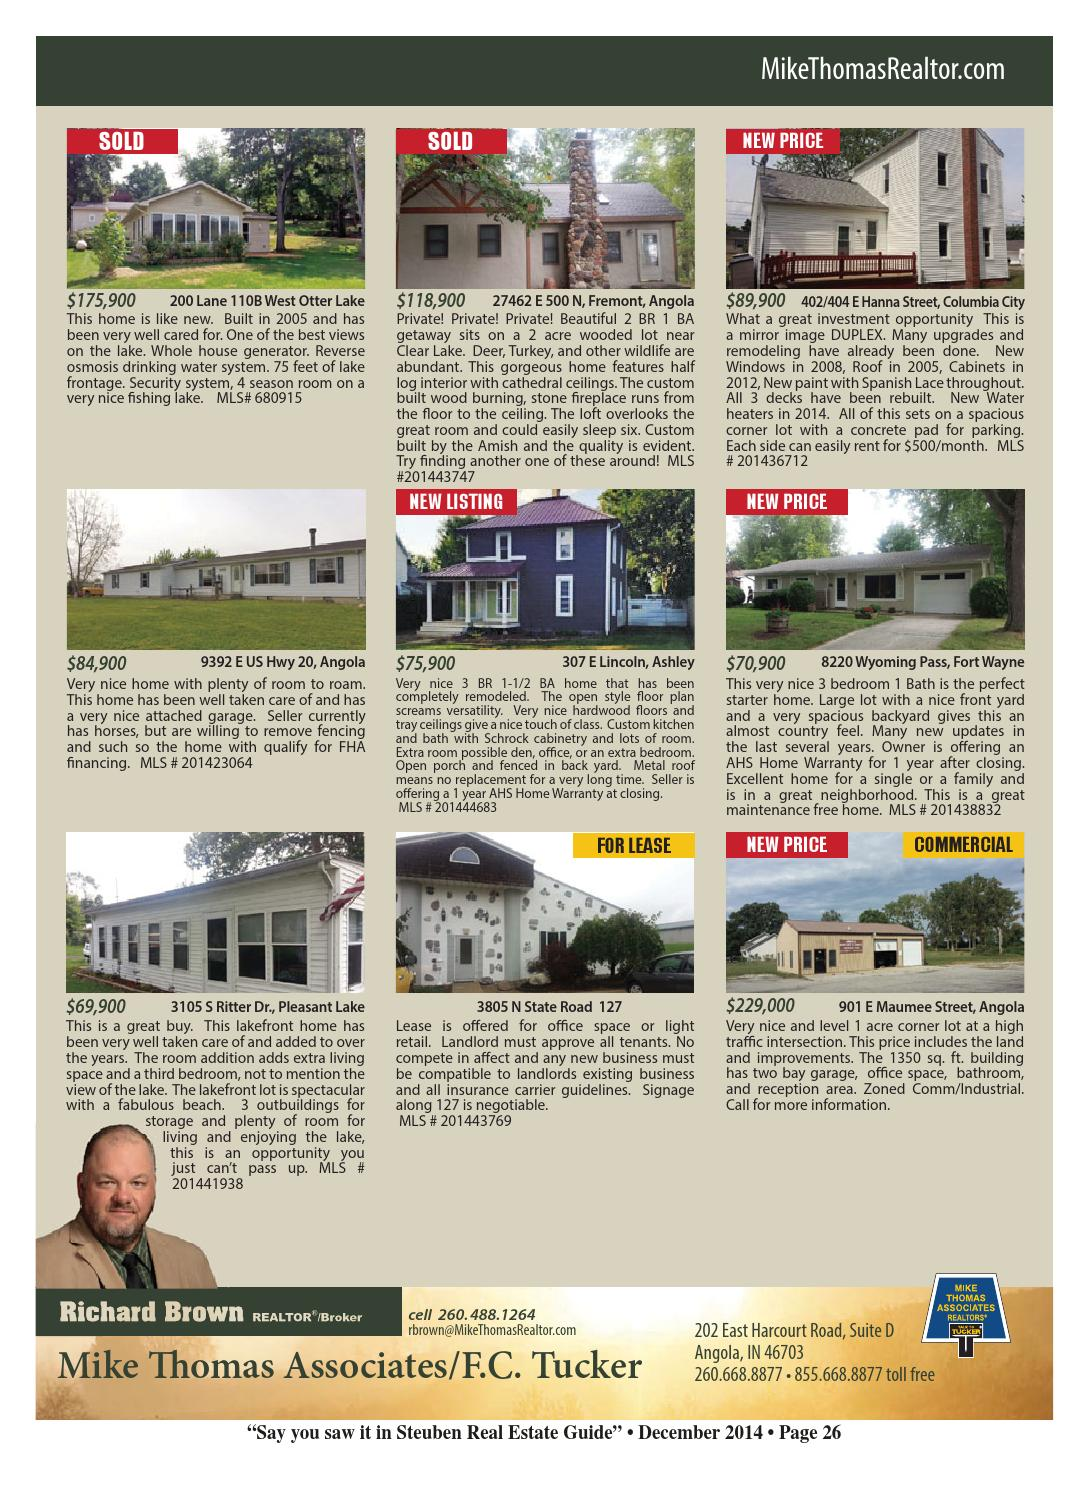 steuben county real estate guide nov 2014 by kpc media group issuu